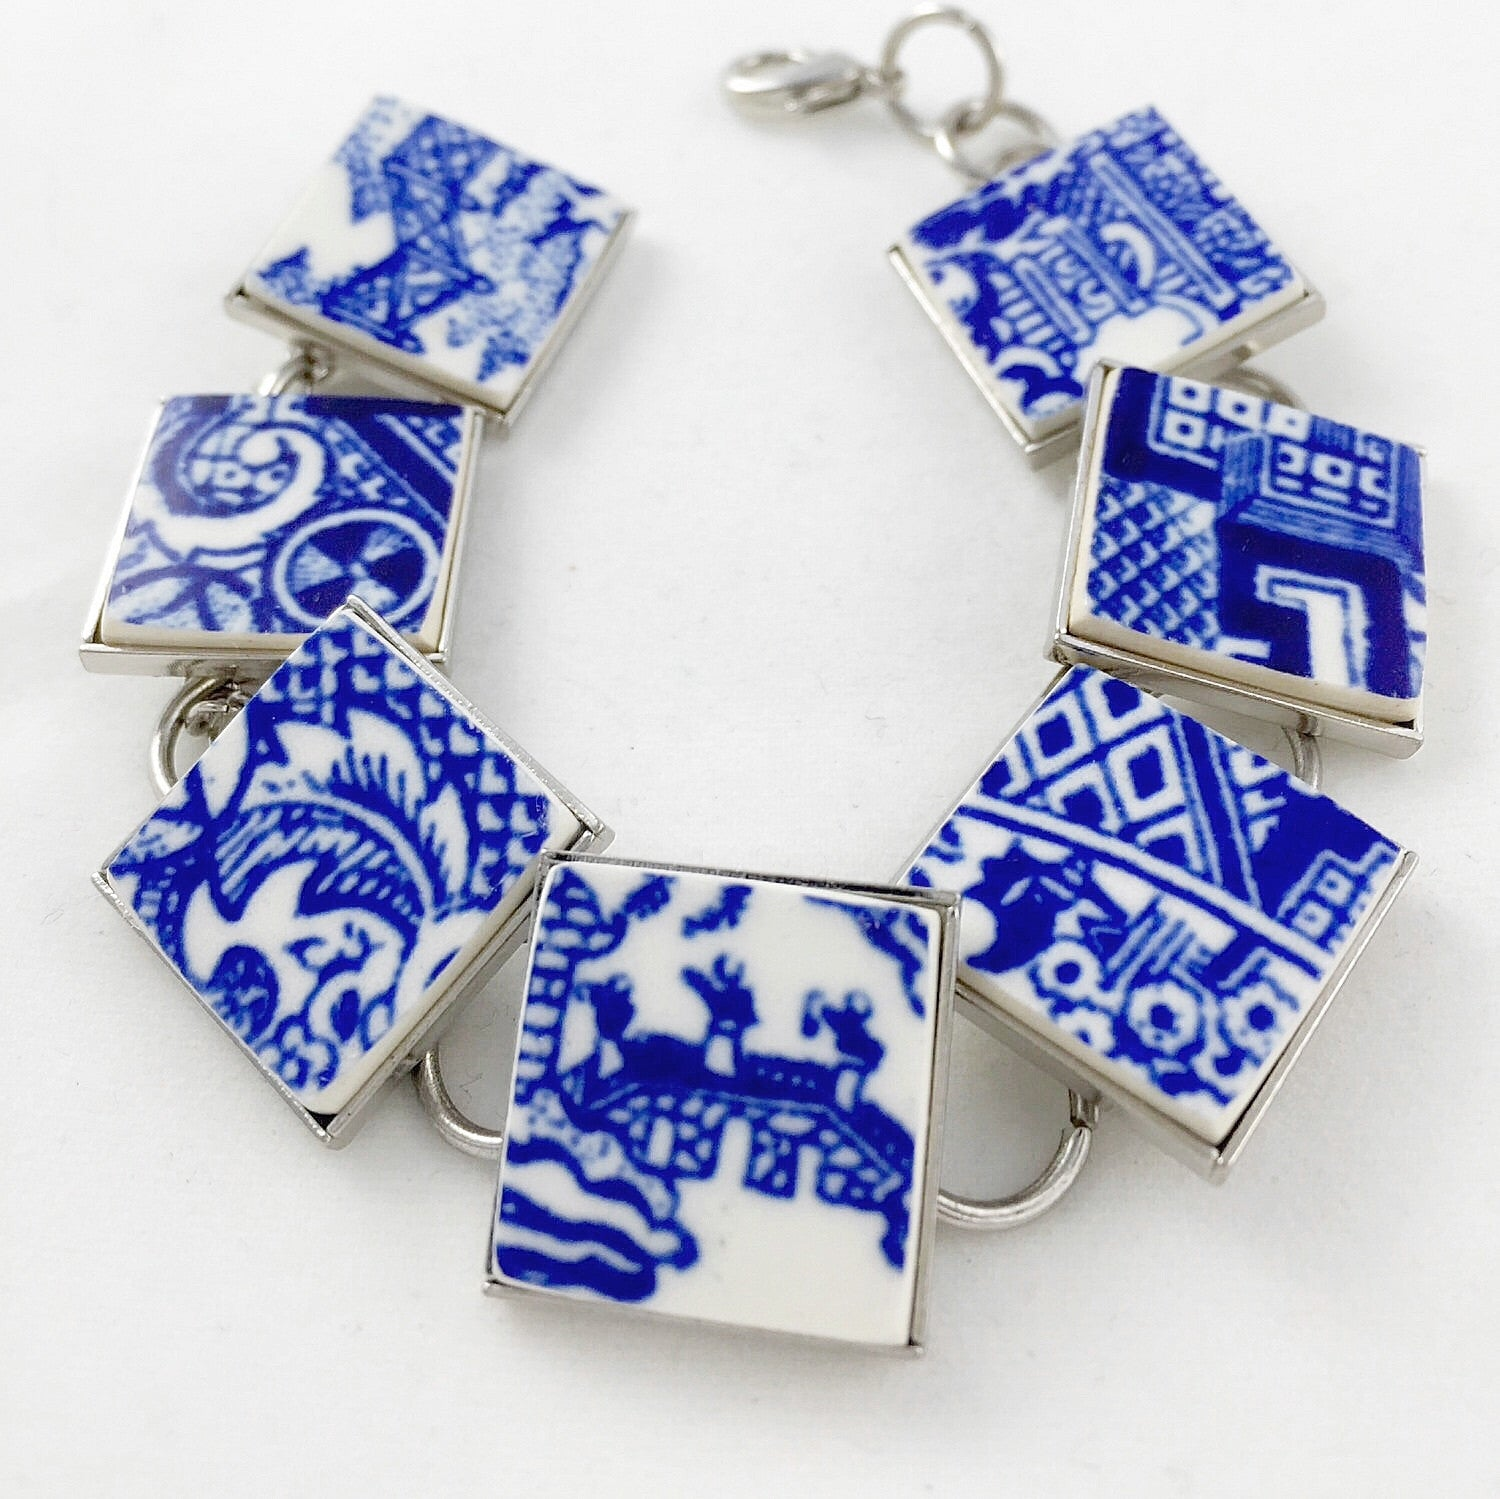 Broken china jewelry - Blue willow bracelet